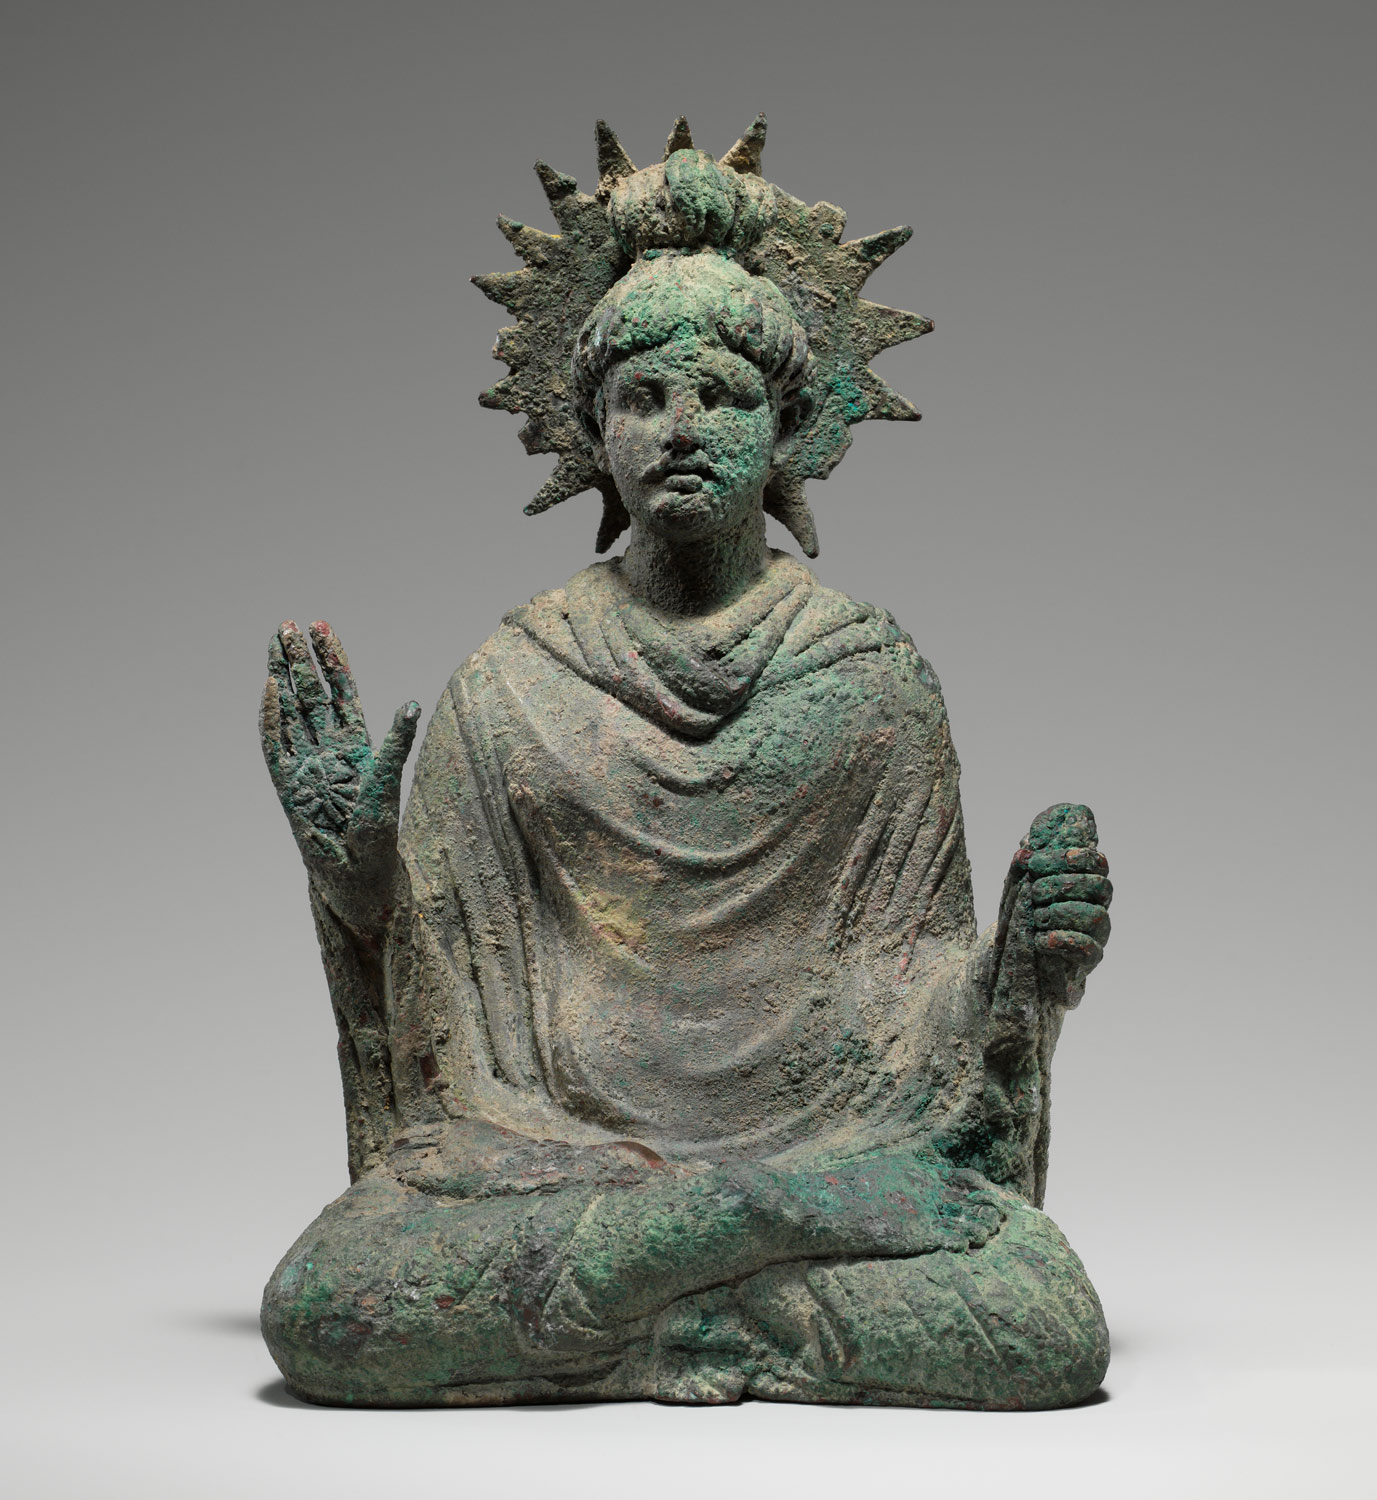 gandhara essay heilbrunn timeline of art history the seated buddha